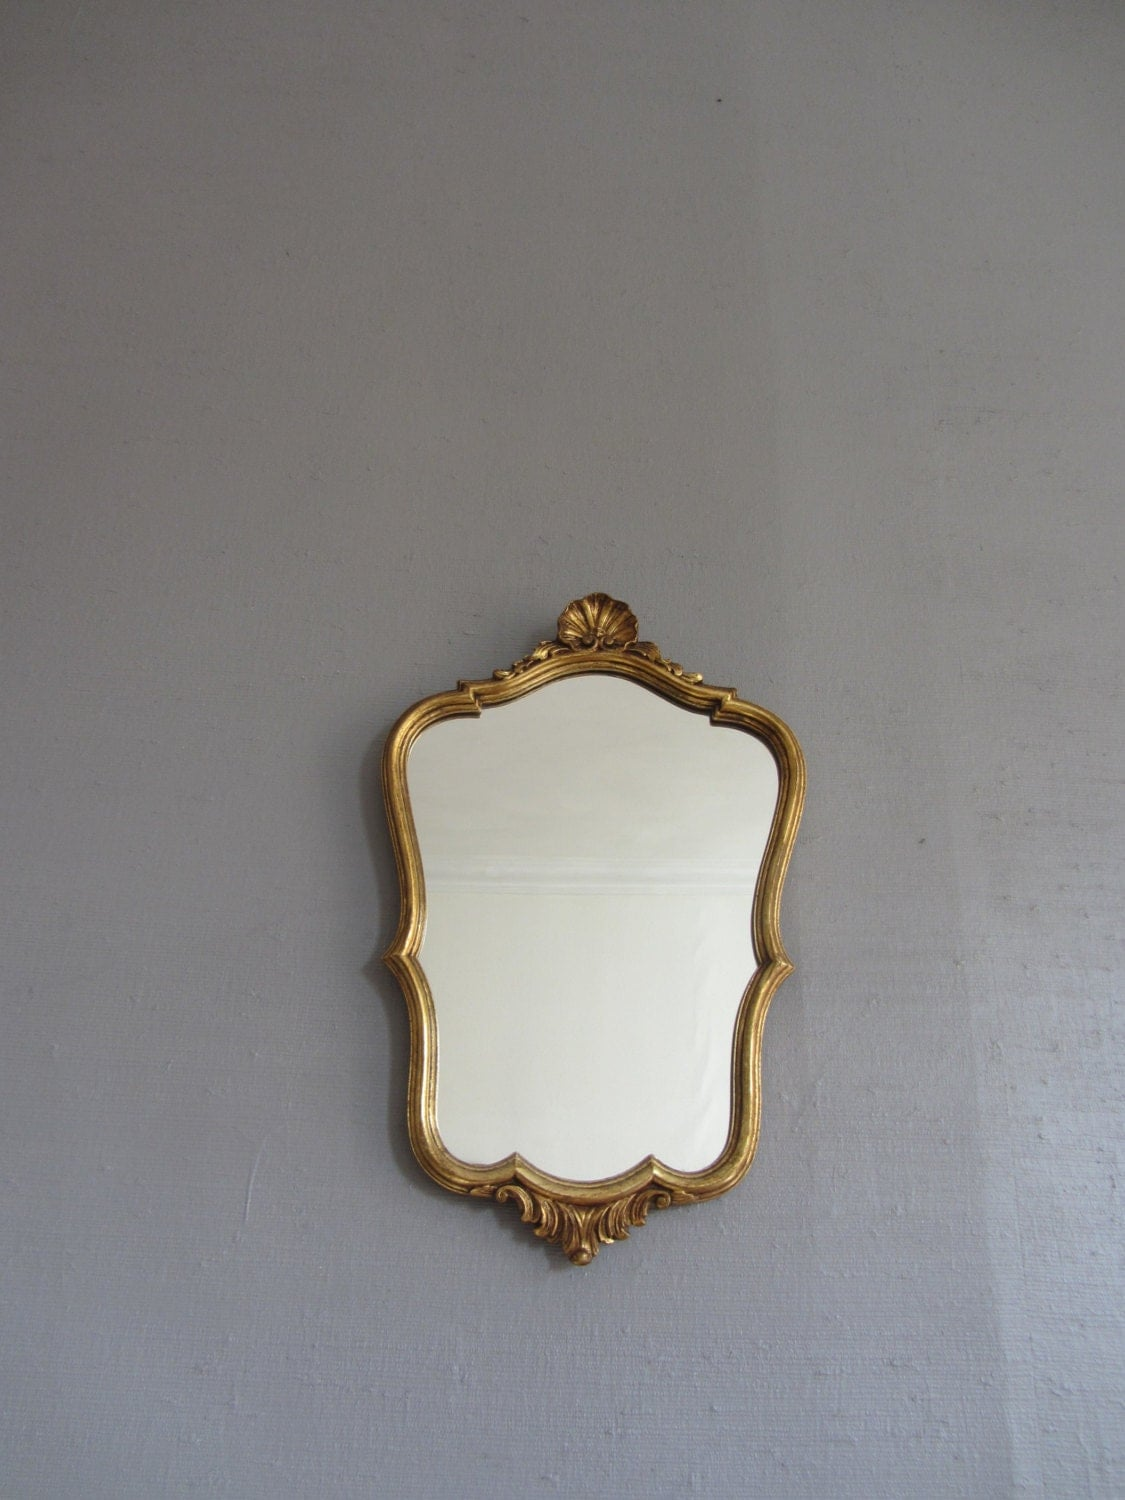 Vintage French Louis Style MIRROR  ~ Gold Gilded Framed Mirror ~ Wall Hanging Decor ~ Shabby Chic Style ~ Petit Miroir ~ Antique Gilt Mirror - FeatherAFrenchNest